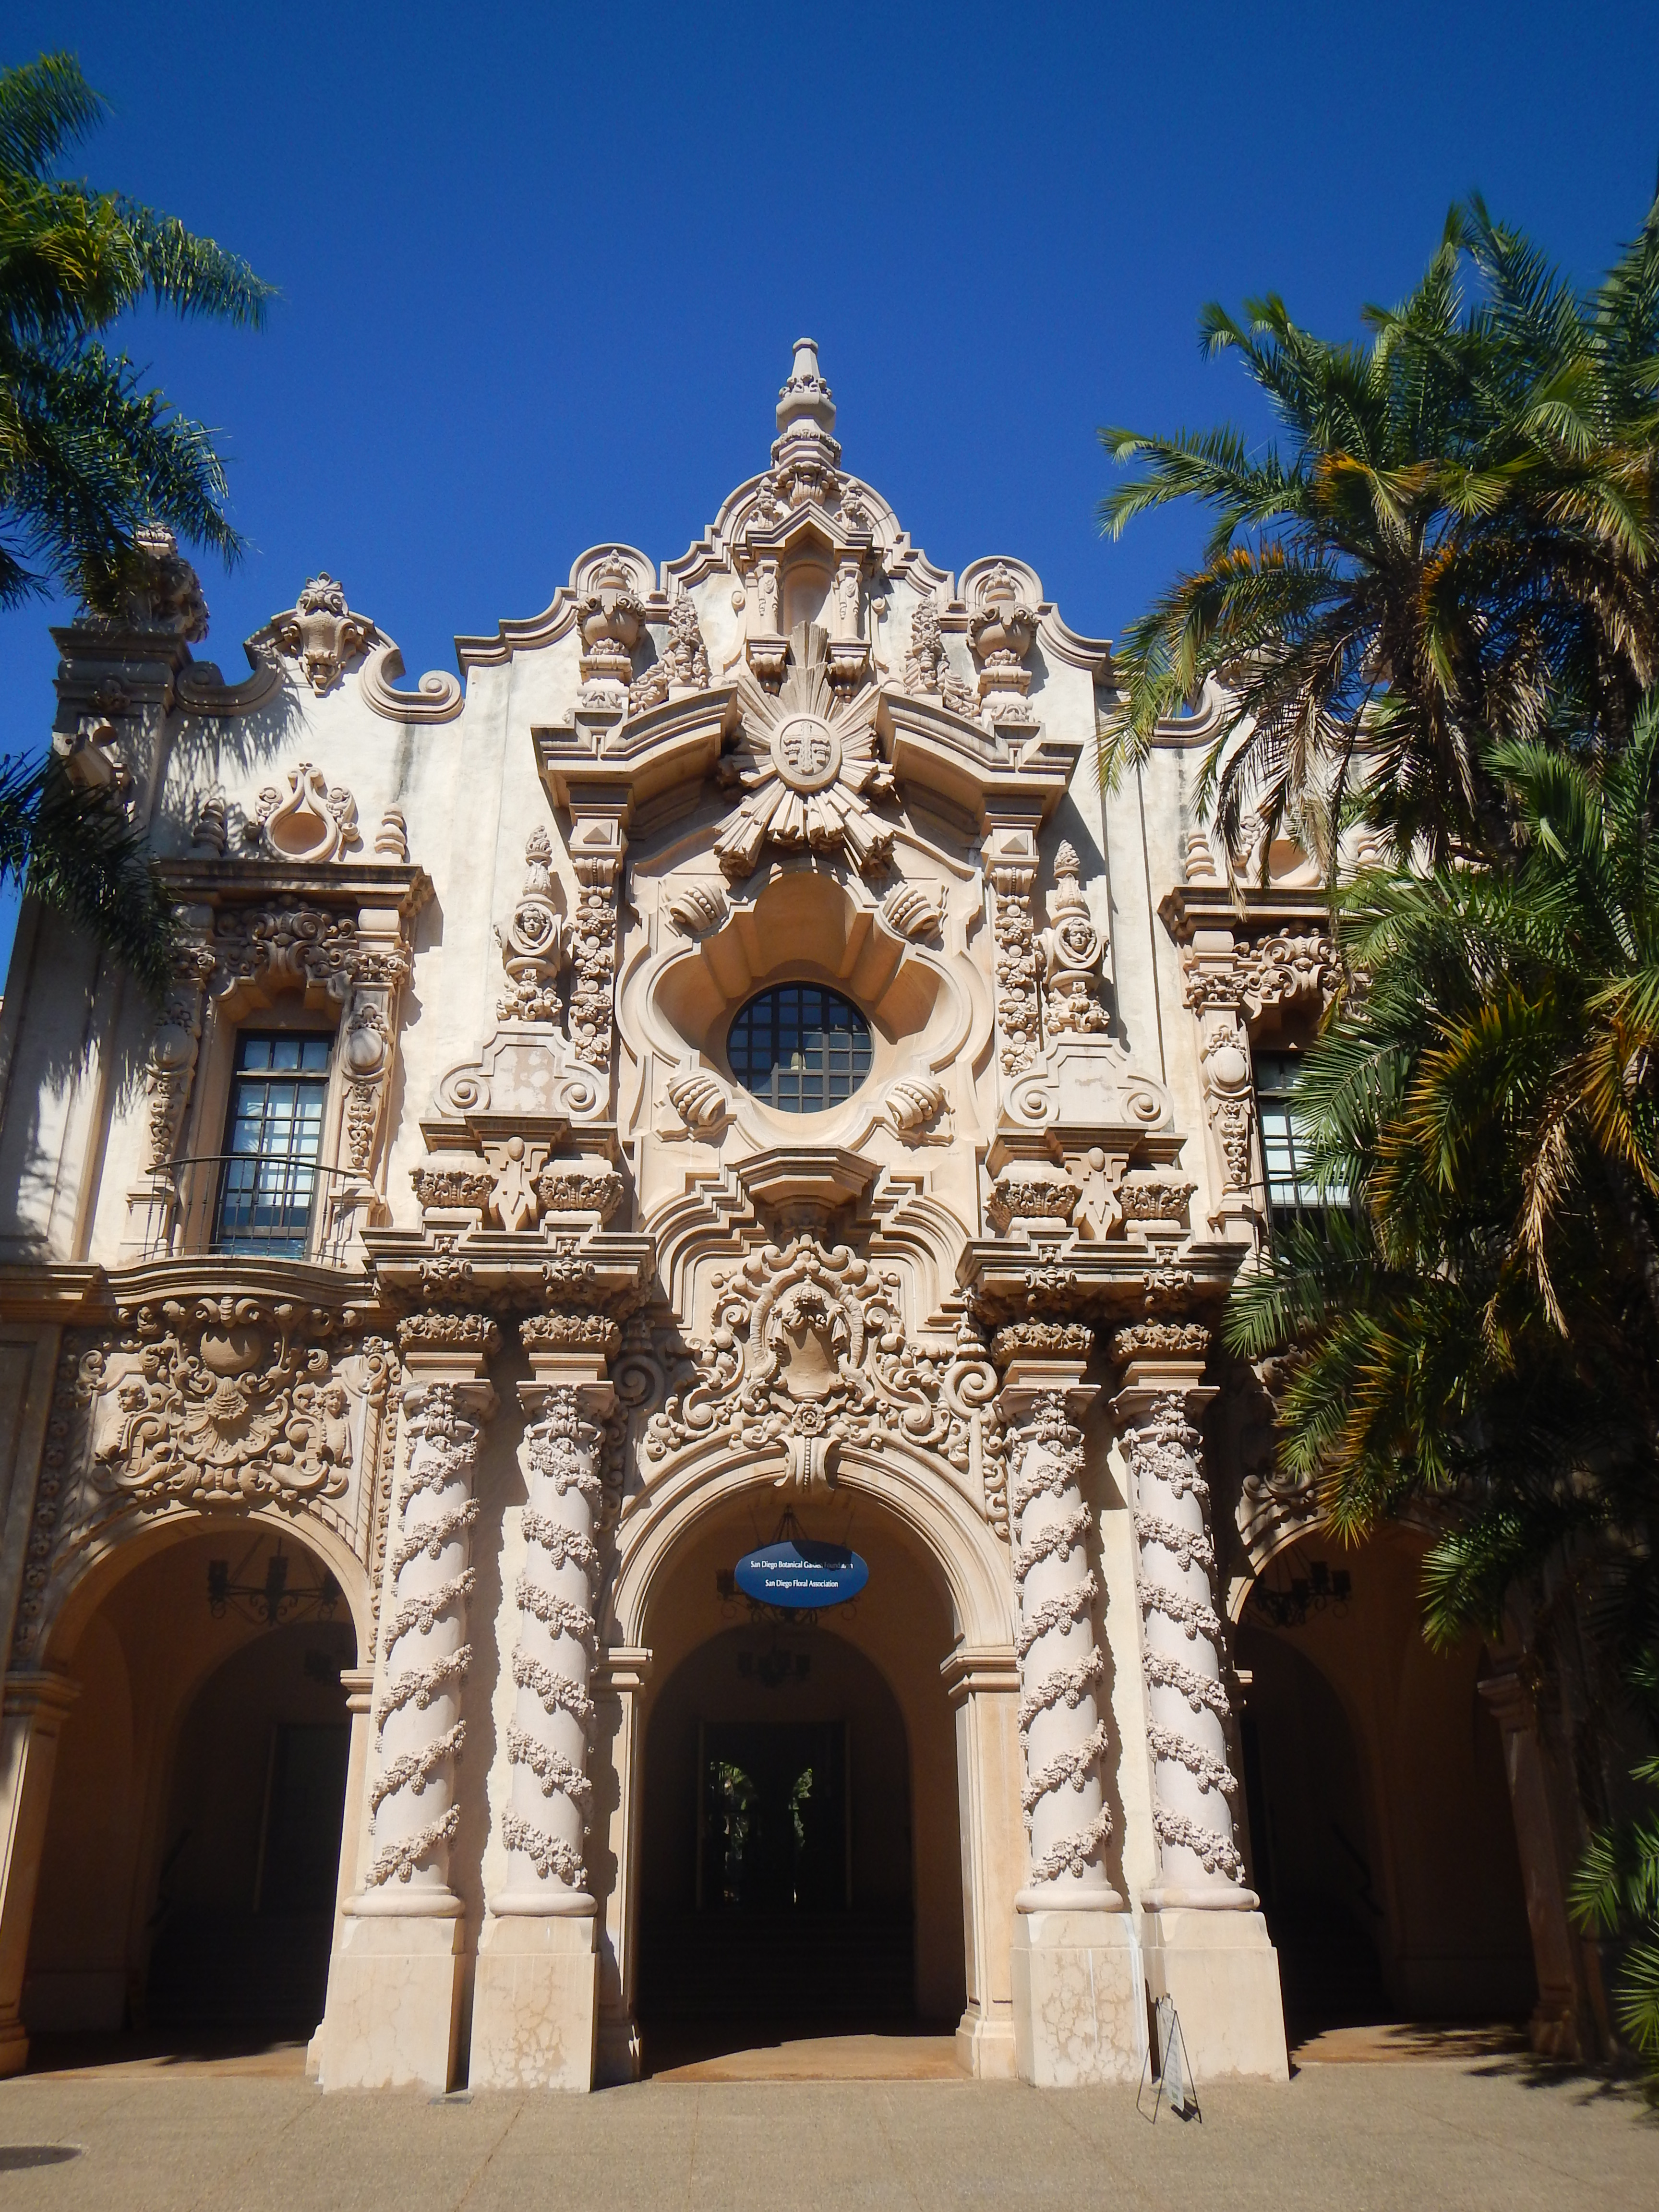 San Diego Part 3 The Architecture and Indoor Gardens of Balboa